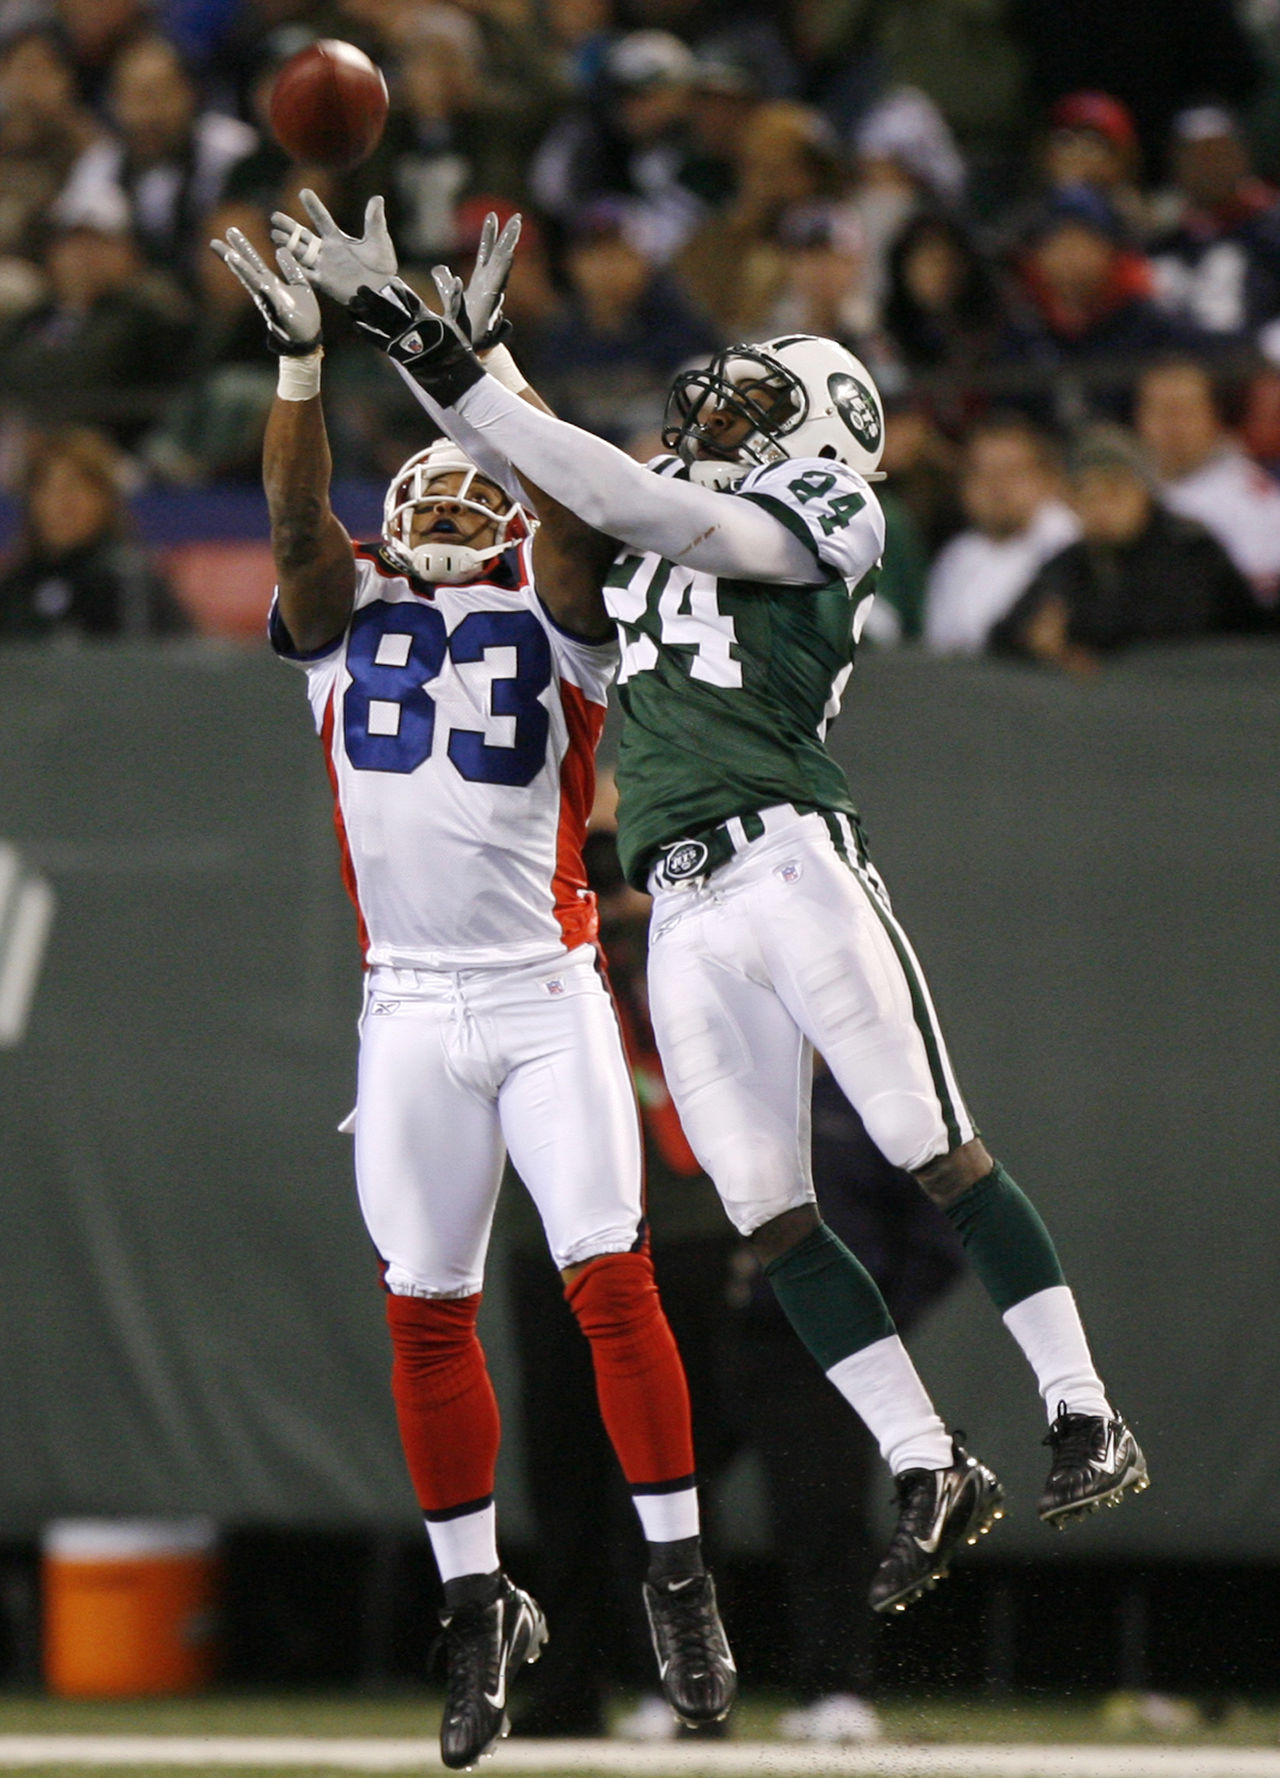 e237c3d66 Buffalo Bills wide receiver Lee Evans (83) competes with New York Jets  defensive back